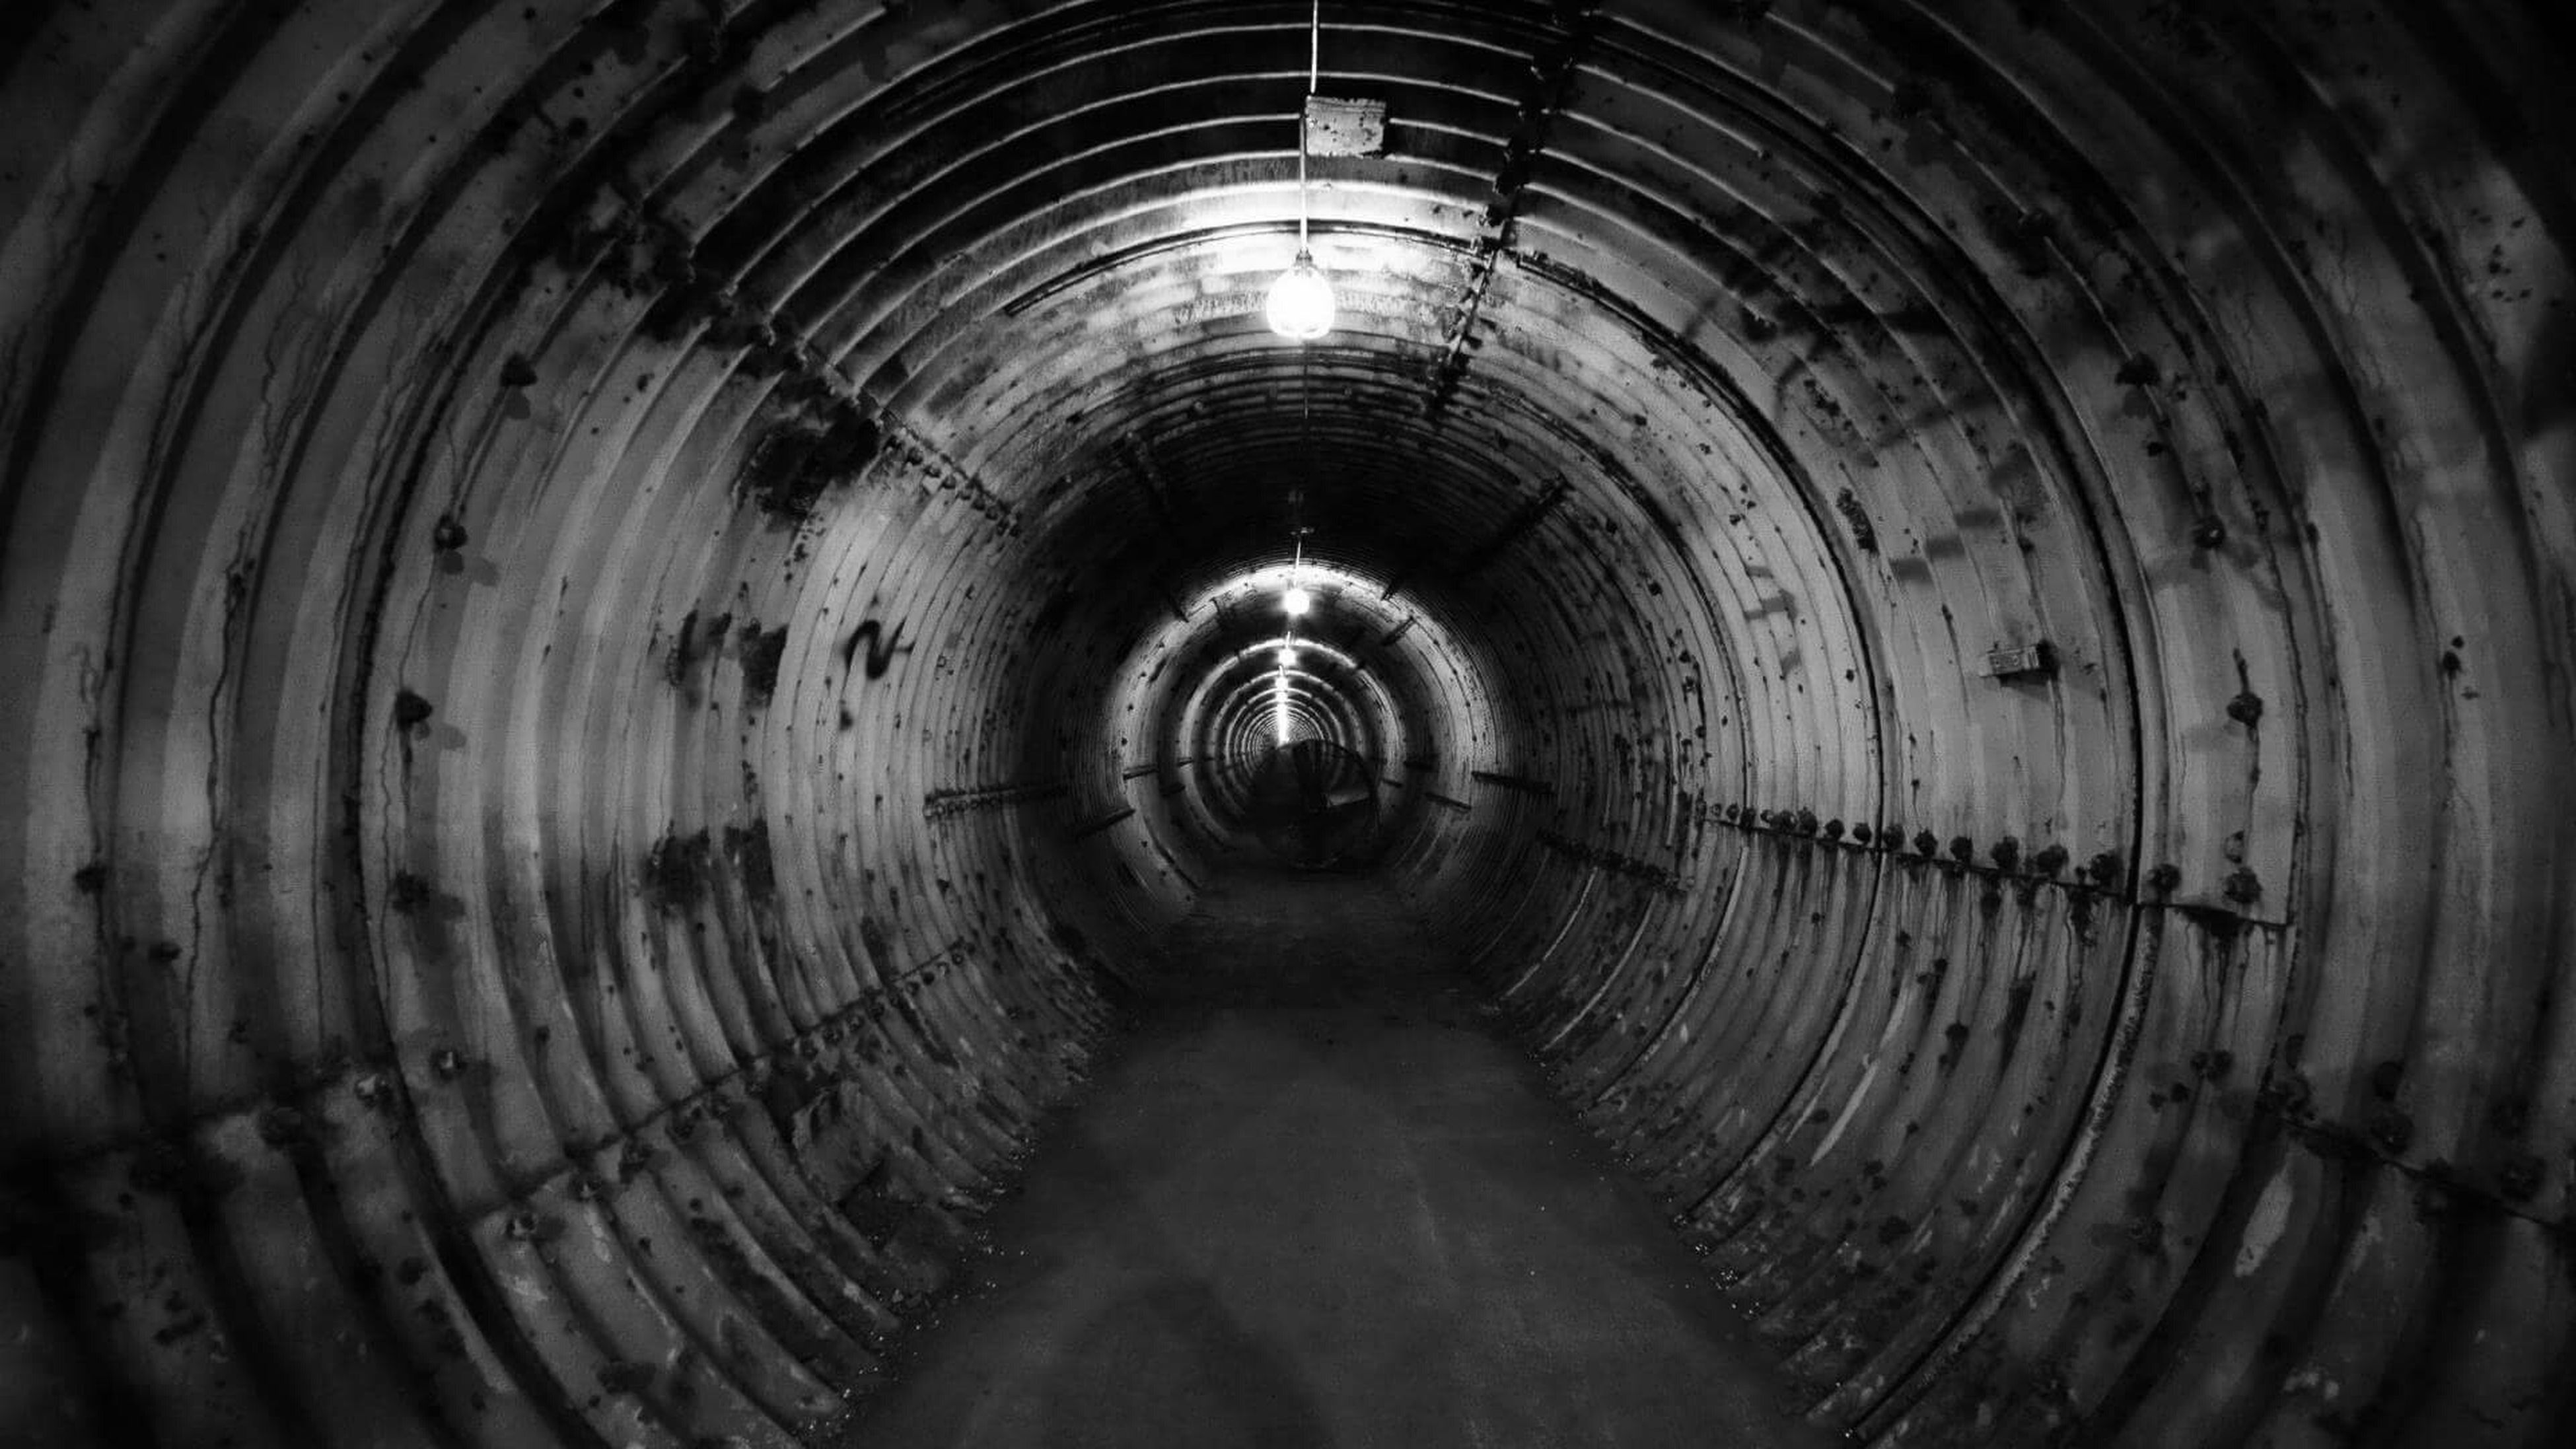 indoors, tunnel, diminishing perspective, the way forward, ceiling, vanishing point, arch, full frame, circle, pattern, backgrounds, no people, old, interior, close-up, hole, illuminated, textured, day, empty